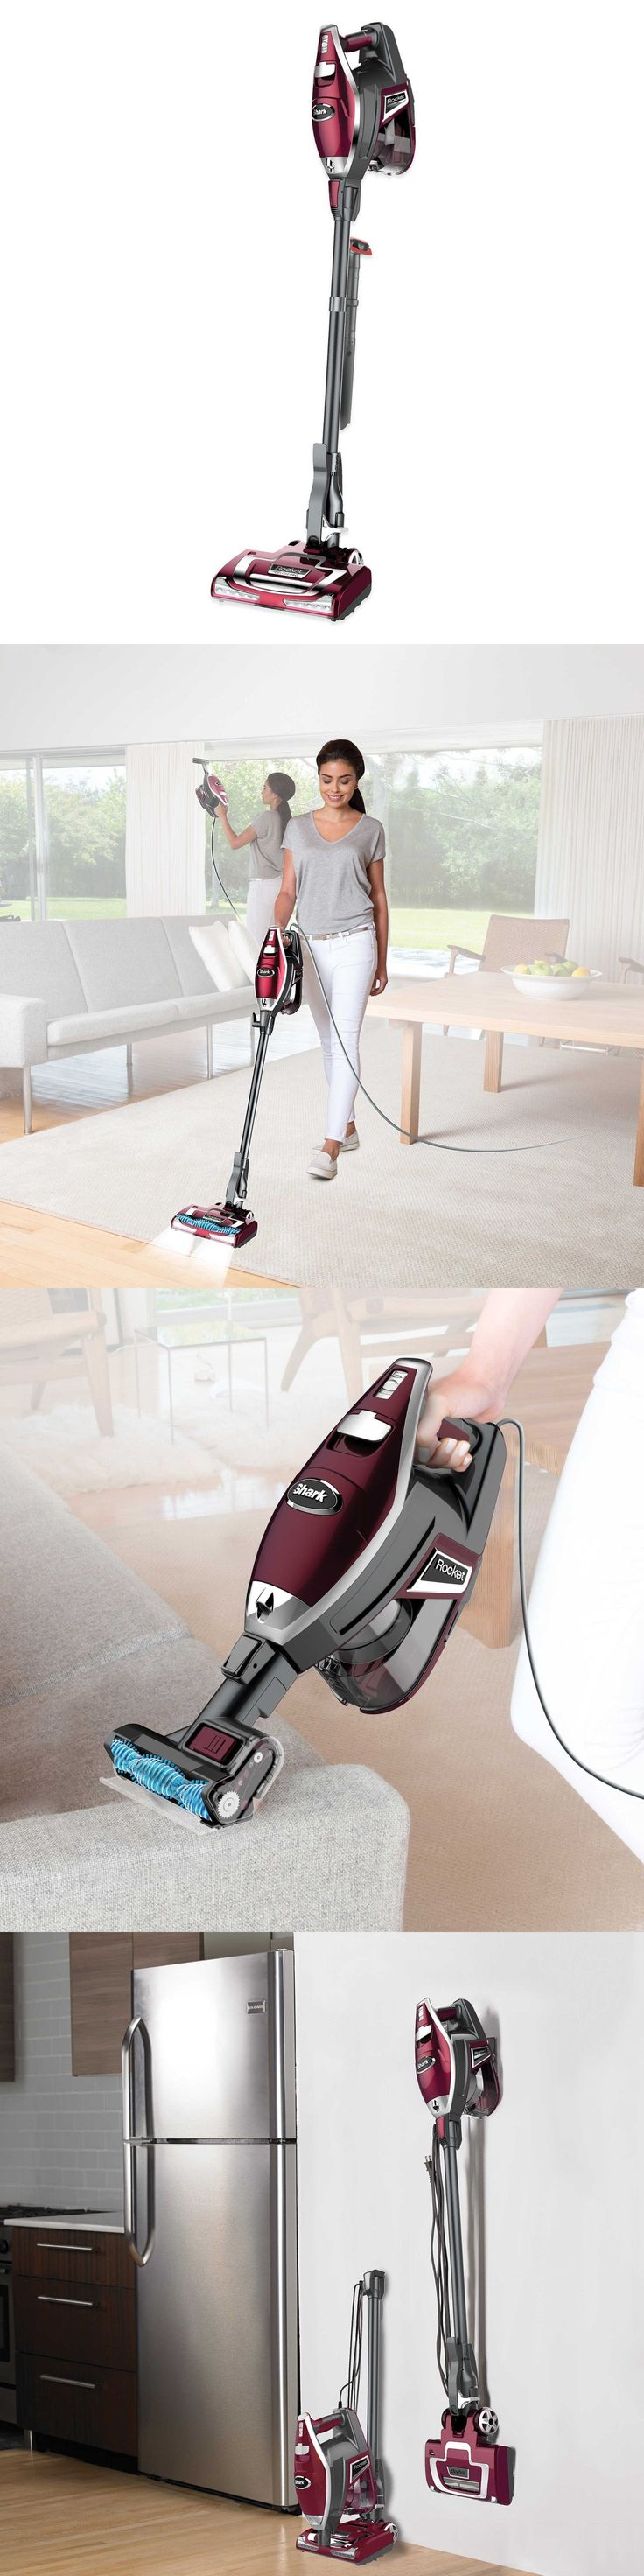 Vacuum Cleaners 20614: Shark Hv322 Rocket Ultra-Light Tru-Pet Vacuum 5-Year Warranty Trupet New Hv322 -> BUY IT NOW ONLY: $189.38 on eBay!